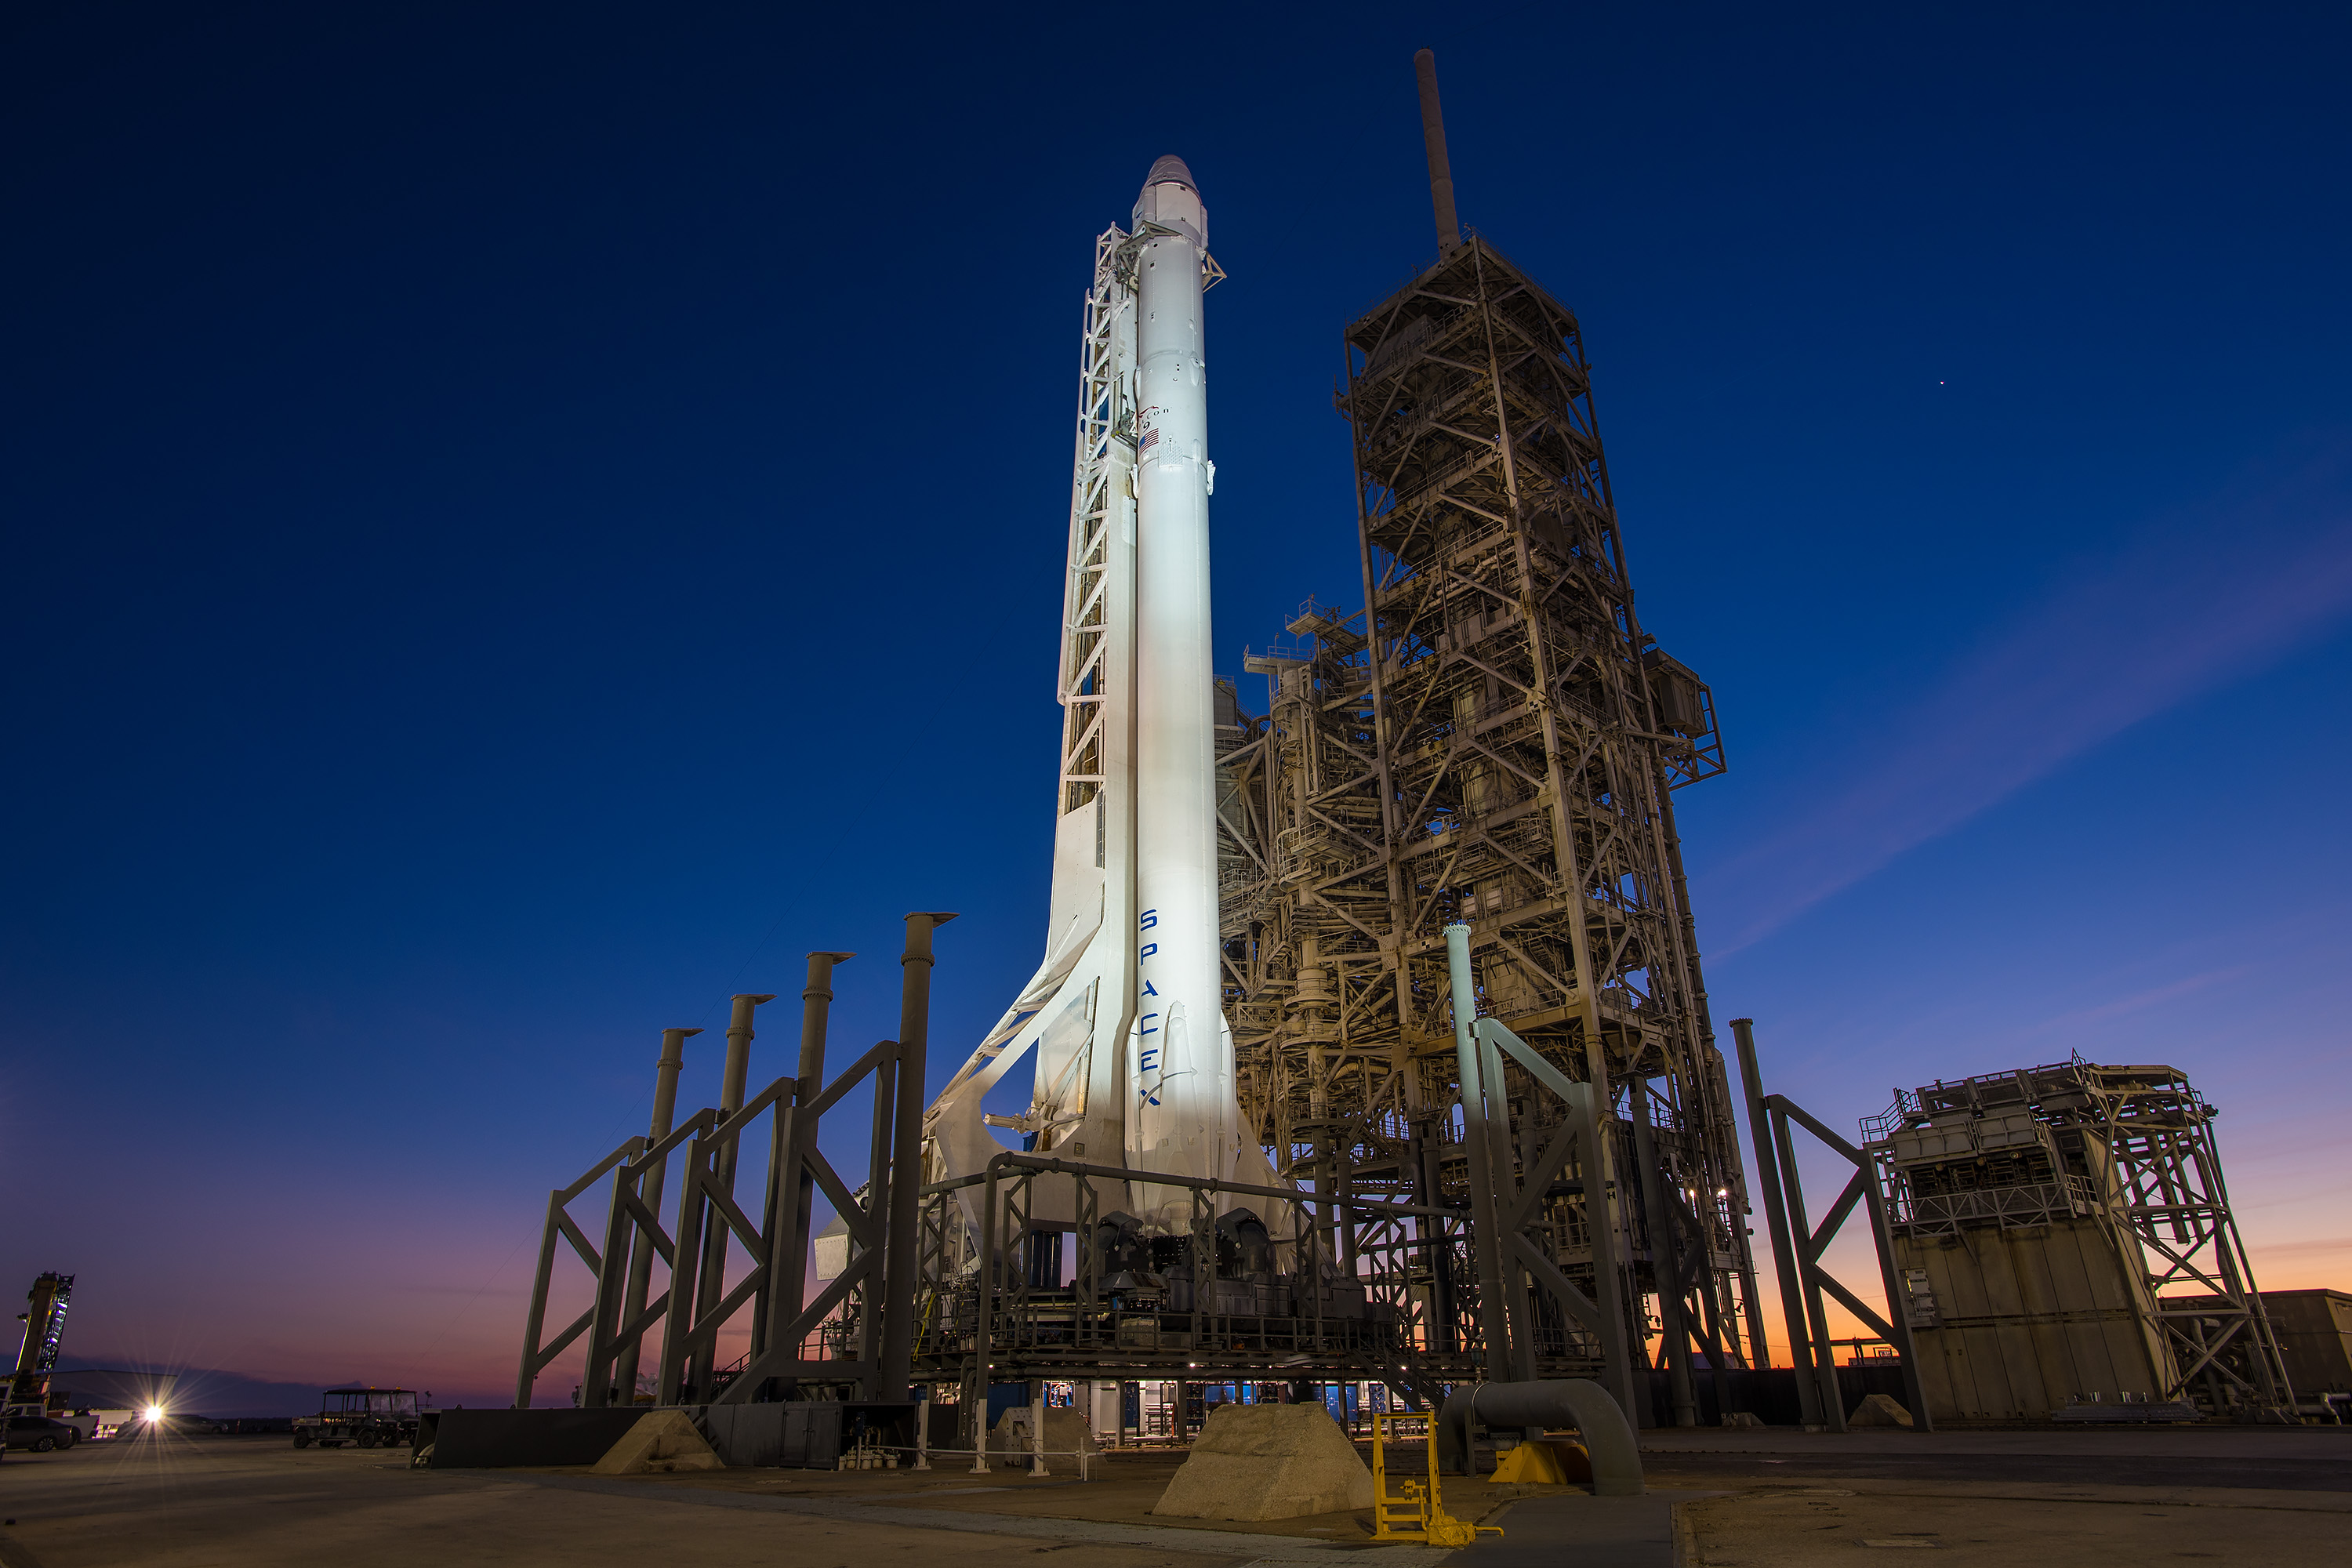 NASA launch postponed due to steering issues